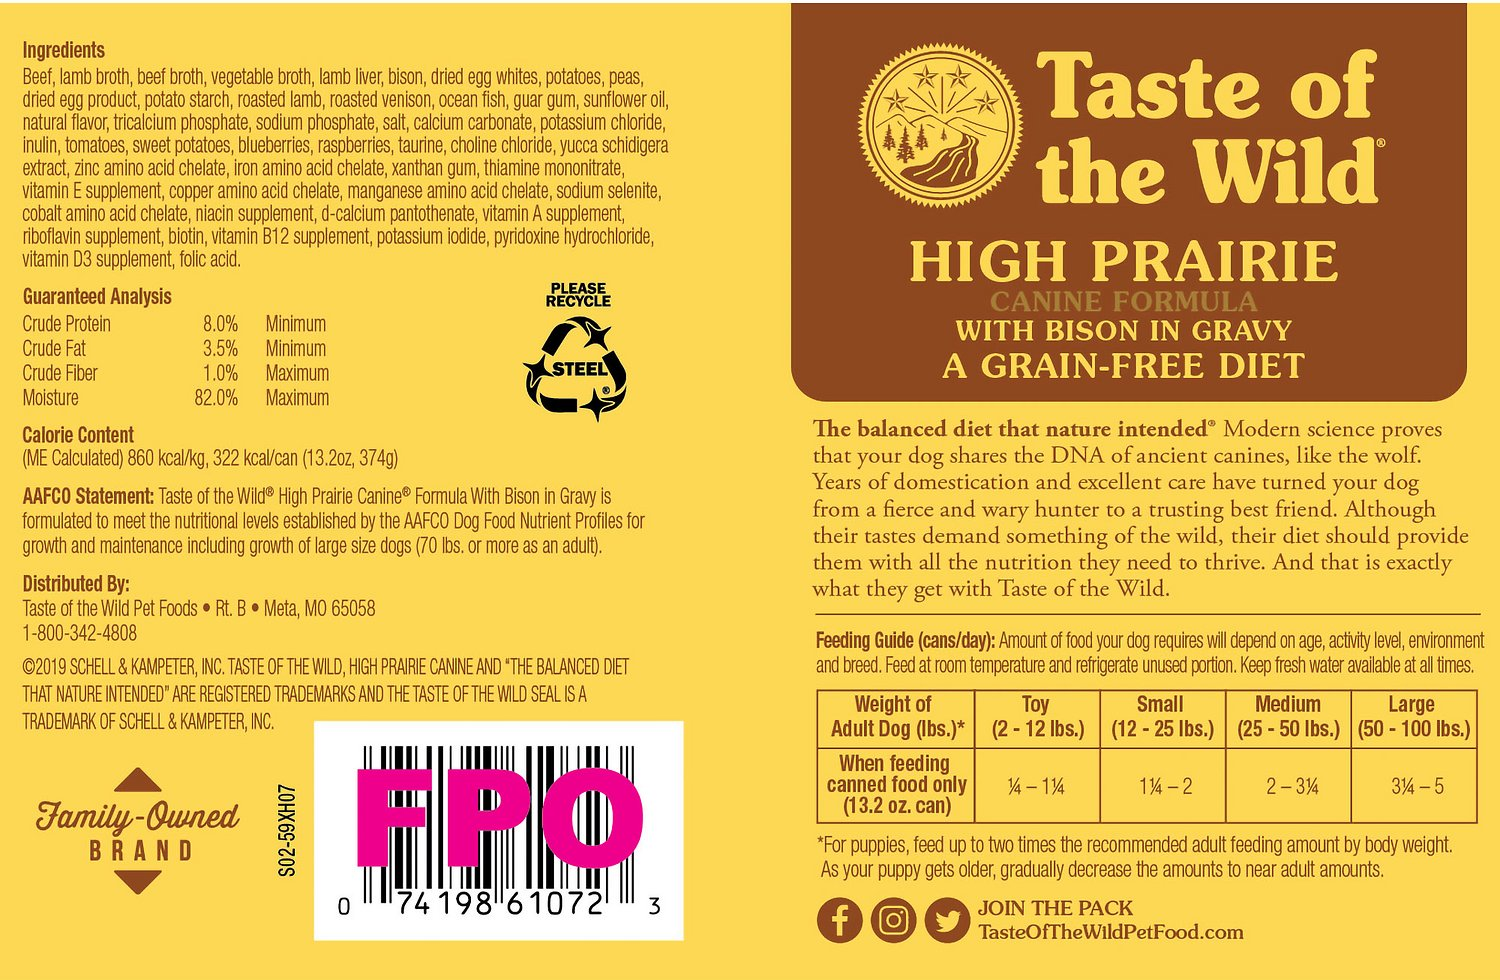 Taste of the wild high prairie grain free canned dog food 13 2 oz